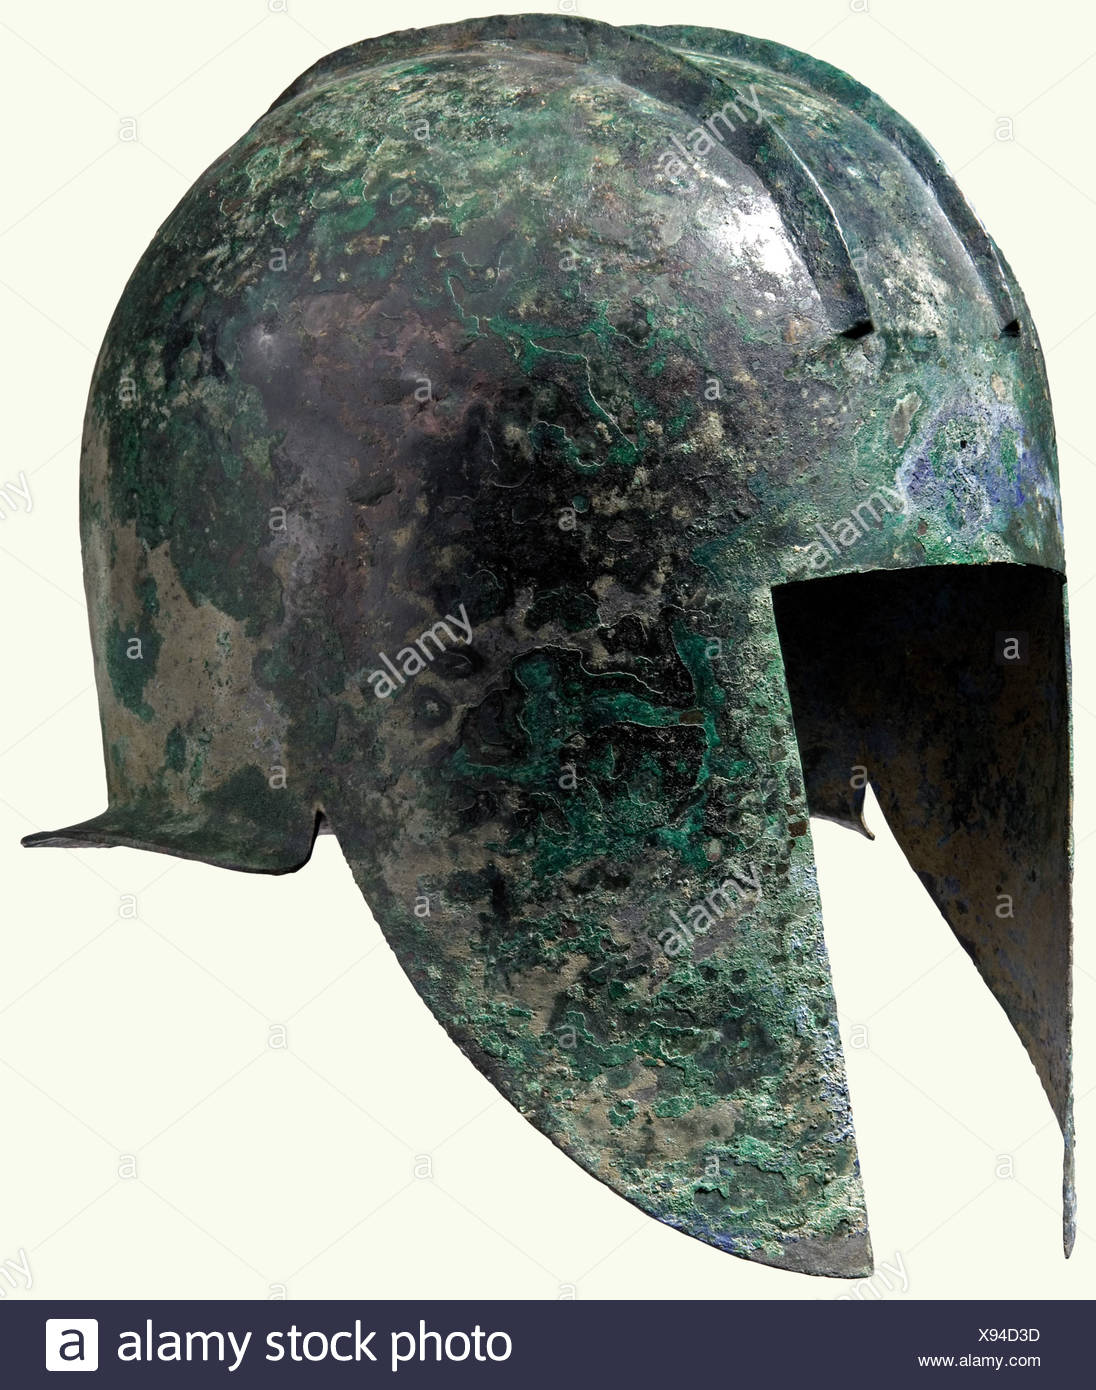 An Illyrian helmet, 5th century B.C. Bronze with greenish patina. High embossed skull with position for the crest between two ridges. Long cheek pieces coming to a point. Neck protector with a short, angled rim. Holes and solder remnants from the original attachment of helmet decorations at the brow and nape. There is a well-restored crack toward the top of the skull. Height 22.5 cm. Weight 962 grams. historic, historical, ancient world, ancient world, ancient times, object, objects, stills, clipping, cut out, cut-out, cut-outs, Additional-Rights-Clearances-NA - Stock Image